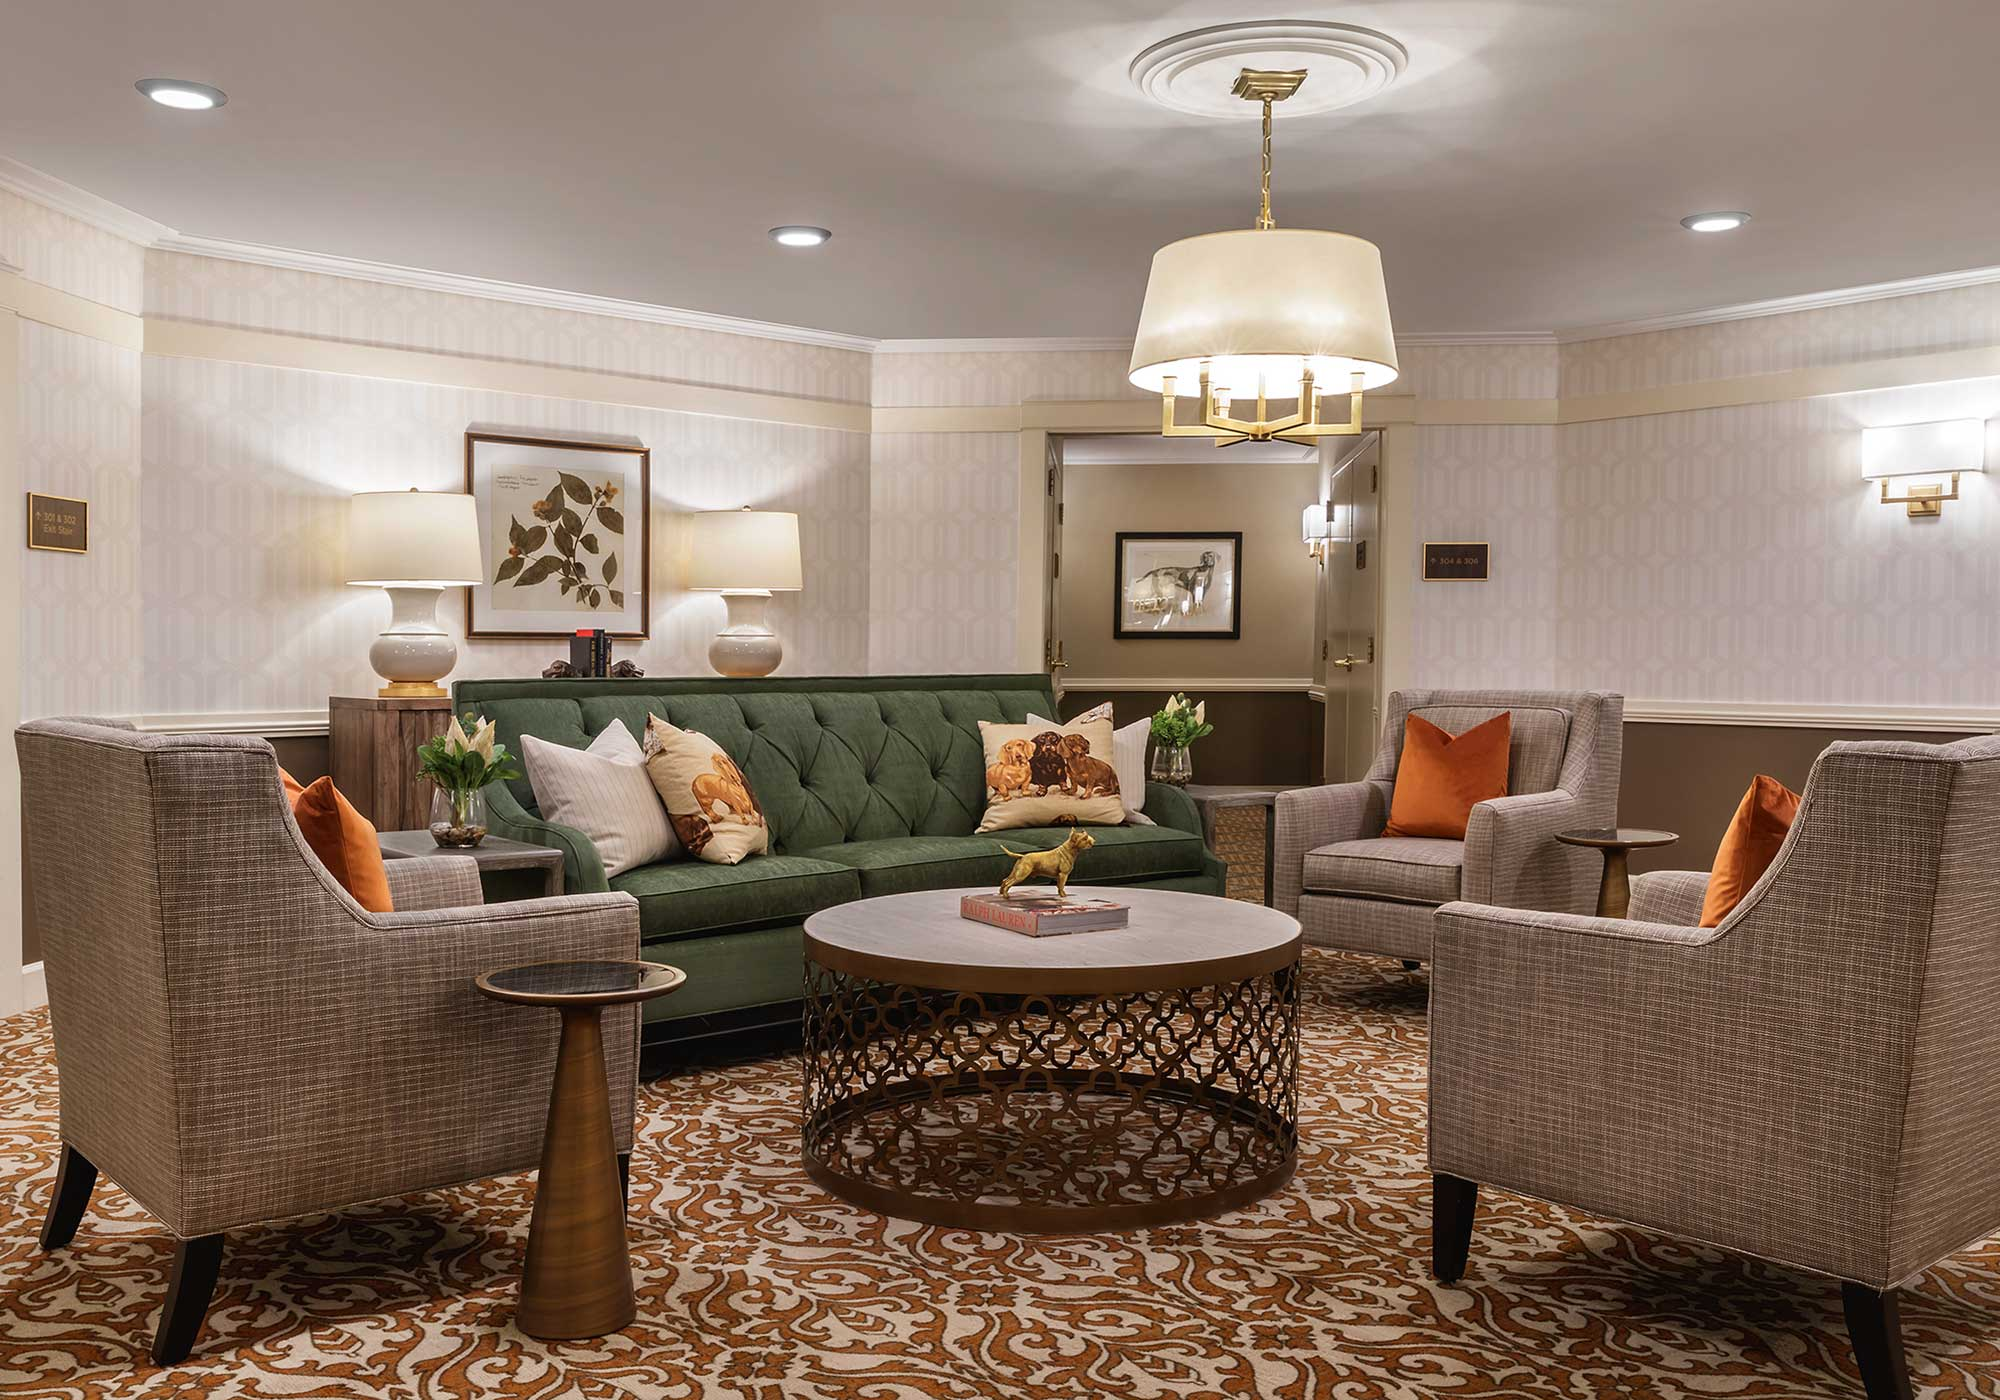 Common area with rustic sofas and chairs